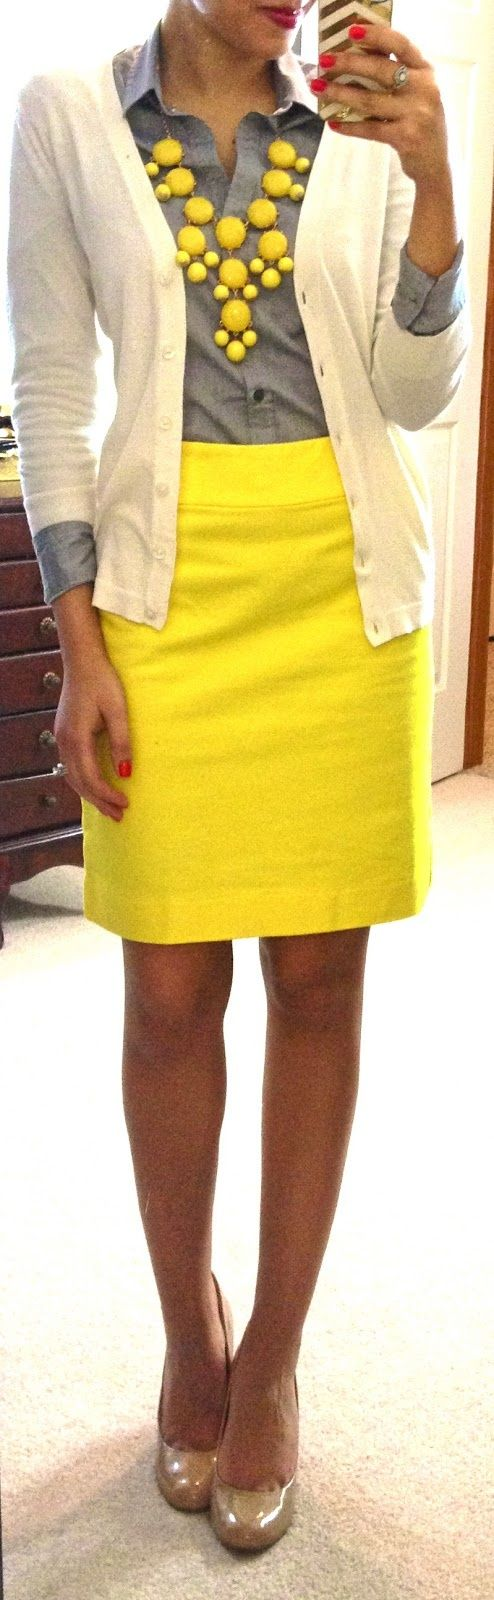 Cute For Work & Church Functions - love the nude heals.  Necklace is a little over the top for my life